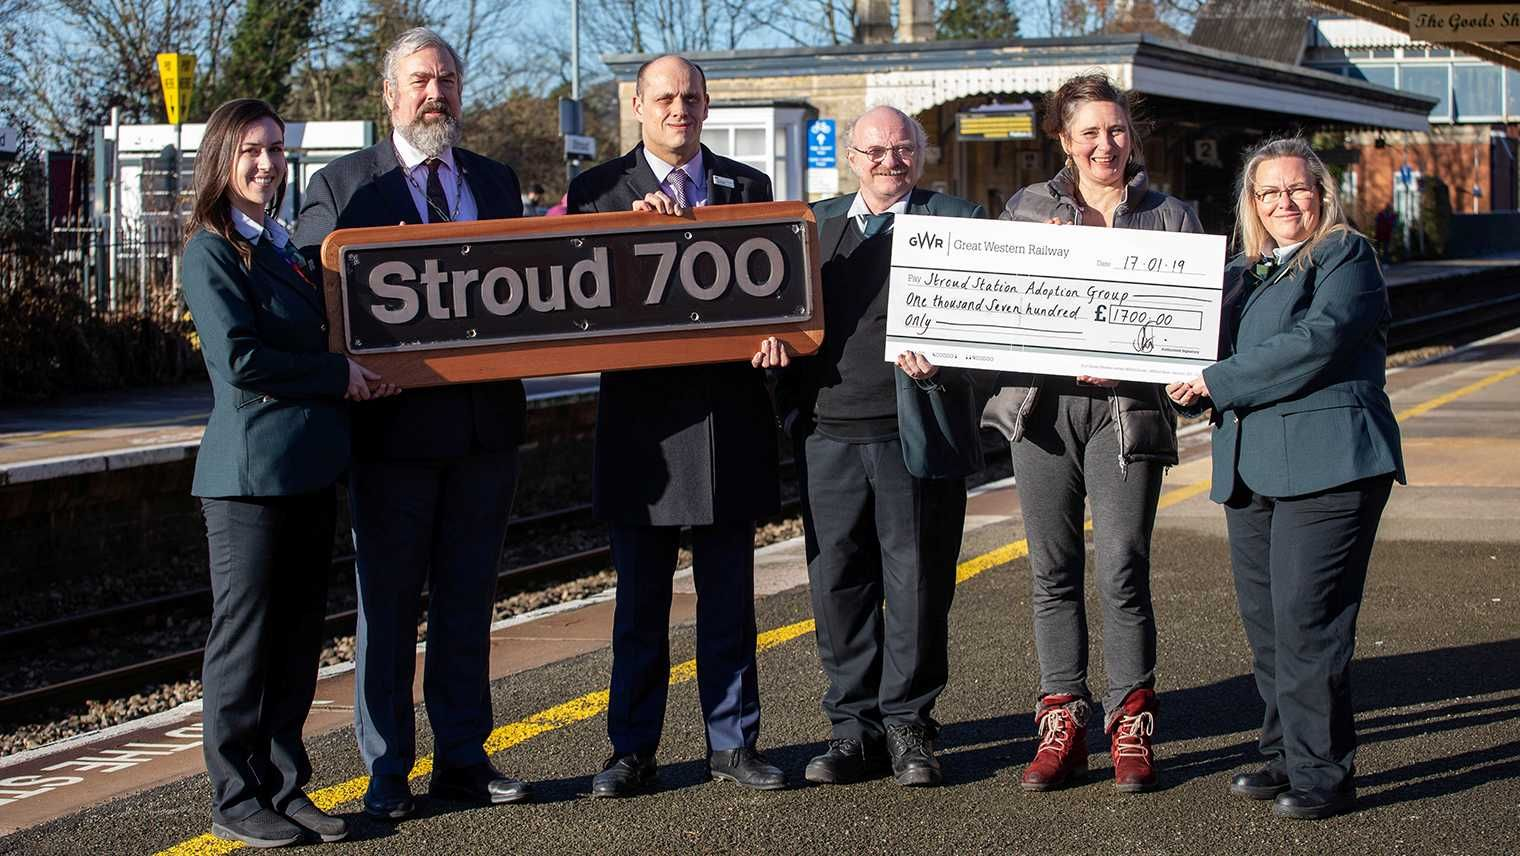 Dignitaries pose for photograph with Stroud 700 nameplate and cheque